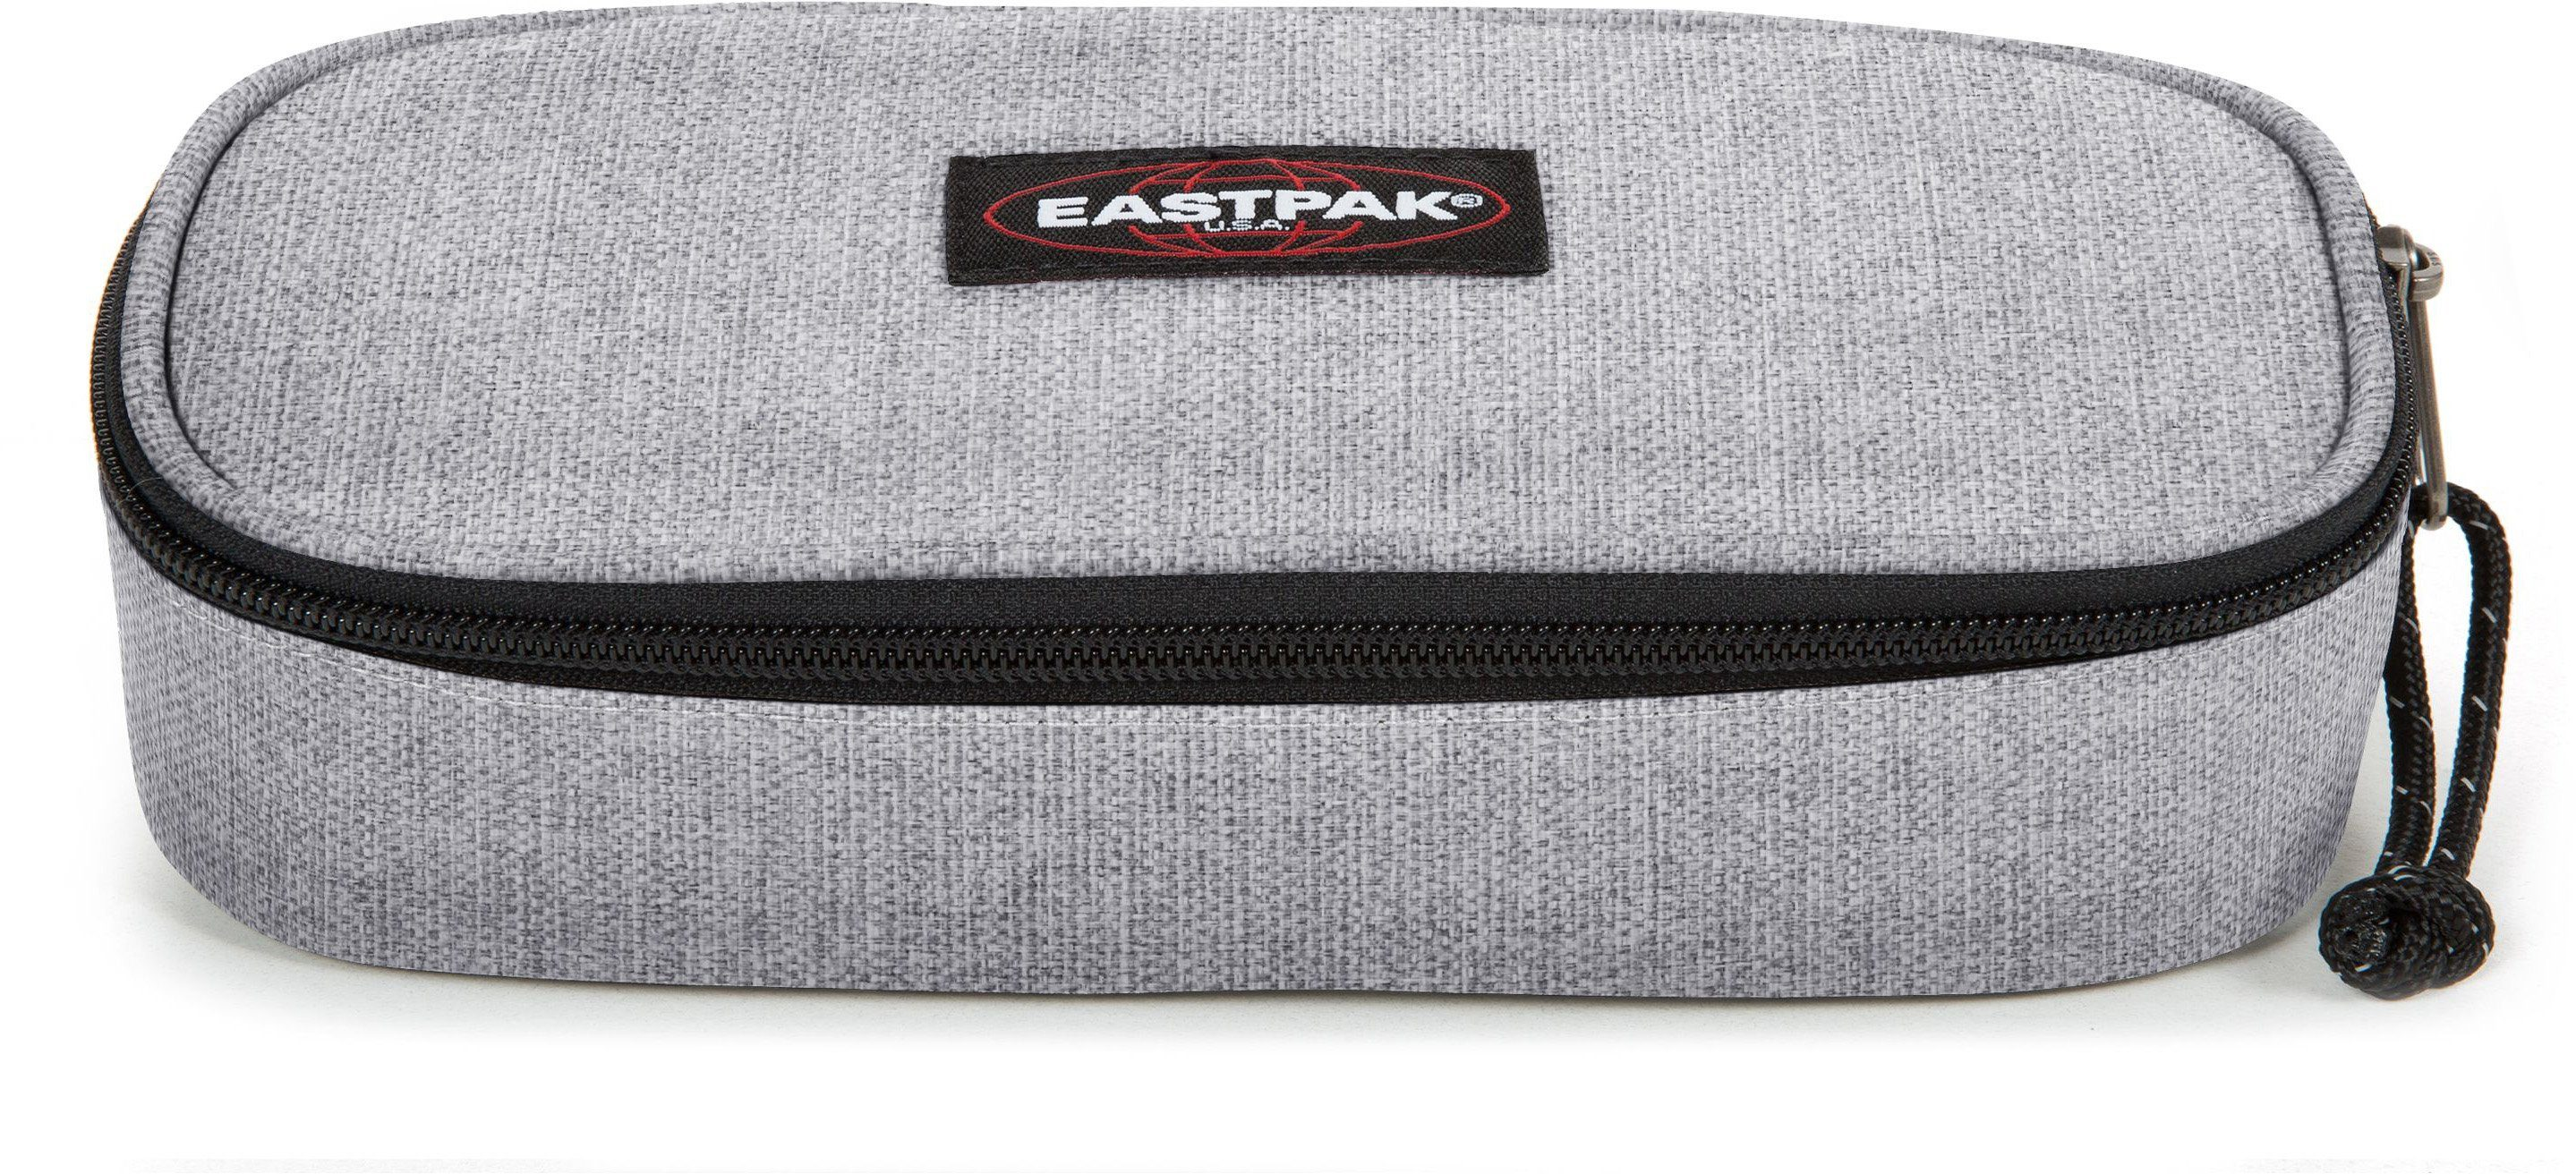 Eastpak Mäppchen, »OVAL SINGLE sunday grey«